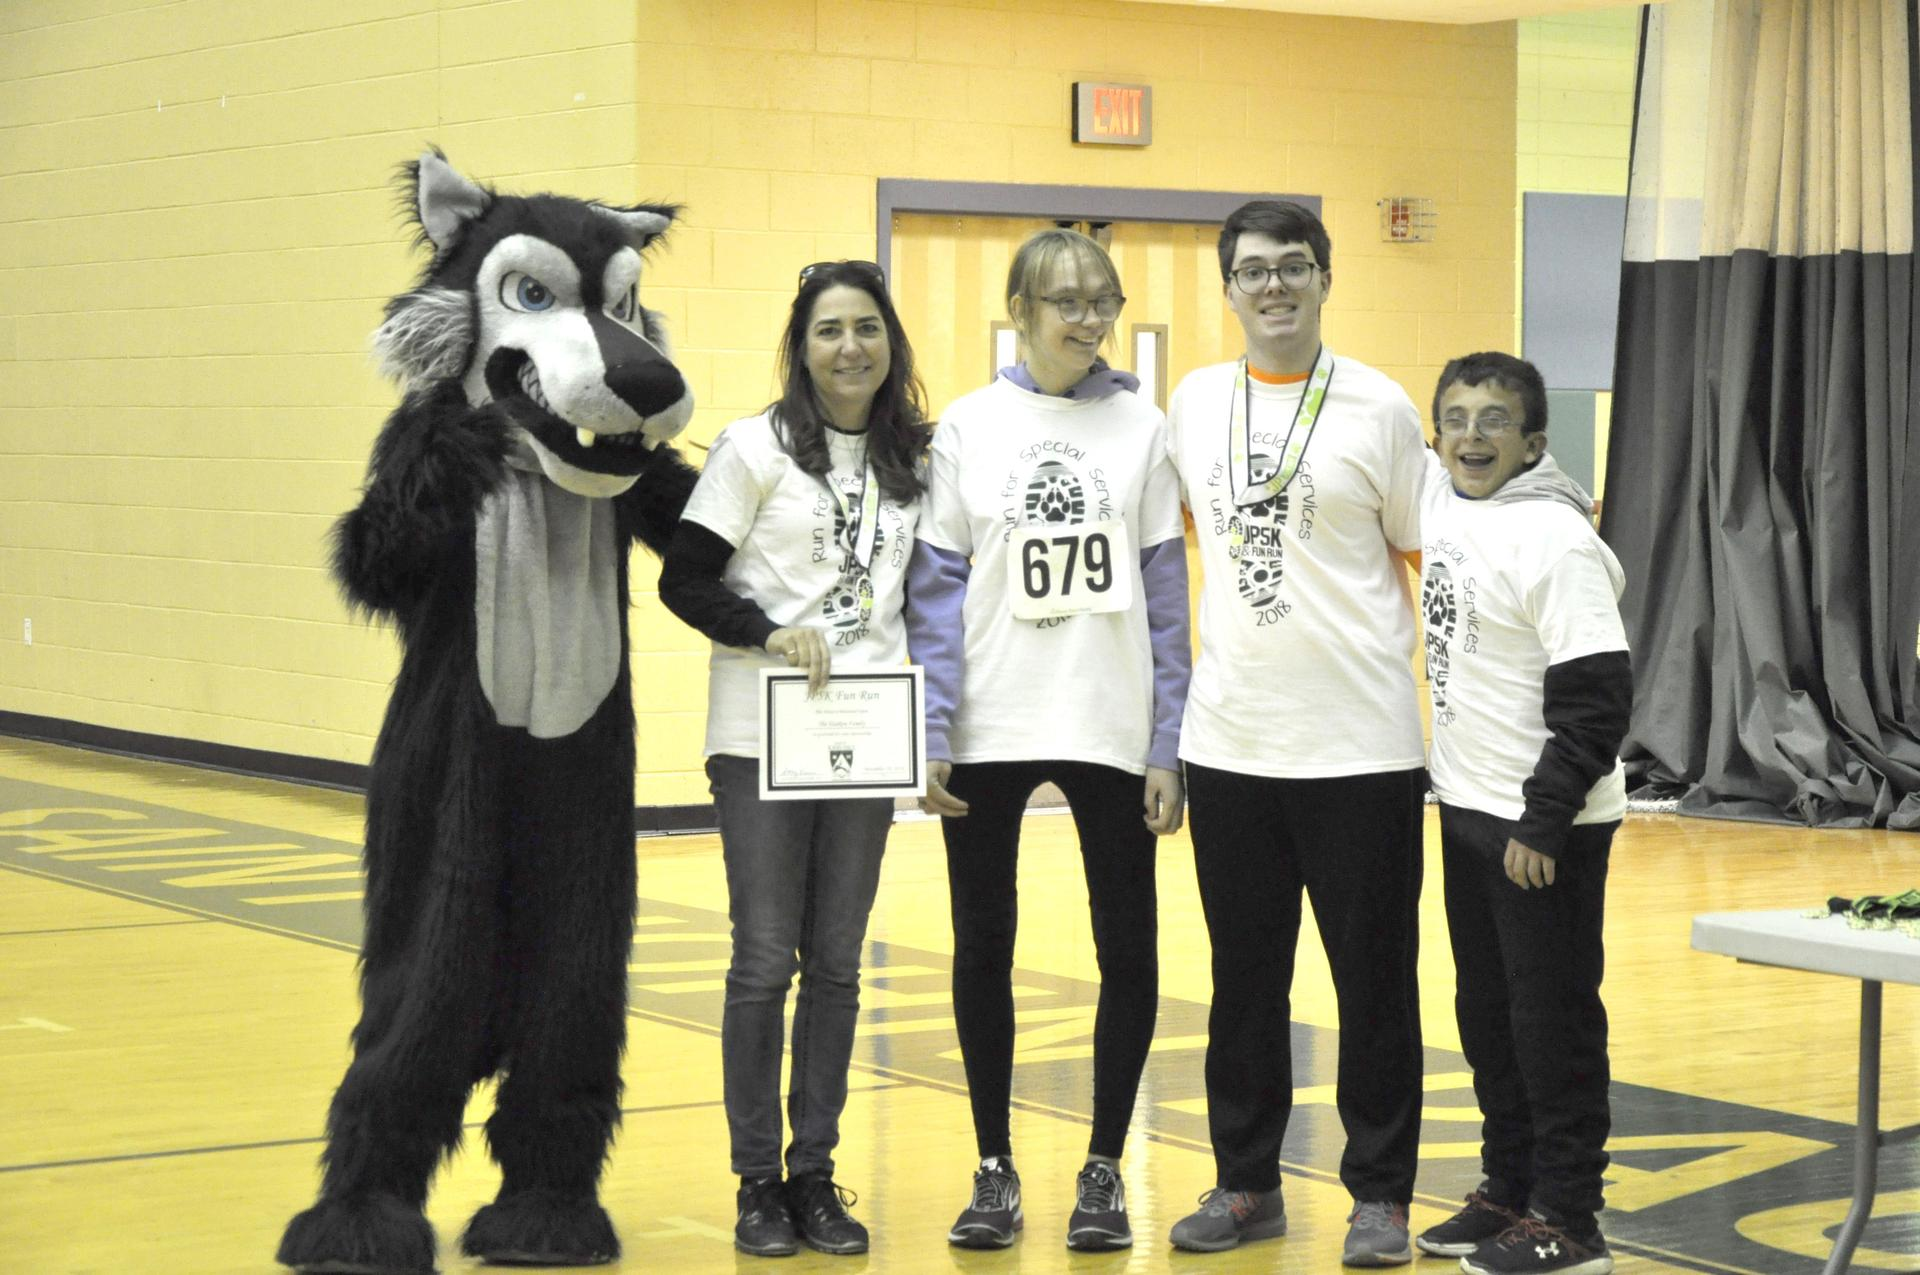 A group of students and the school mascot